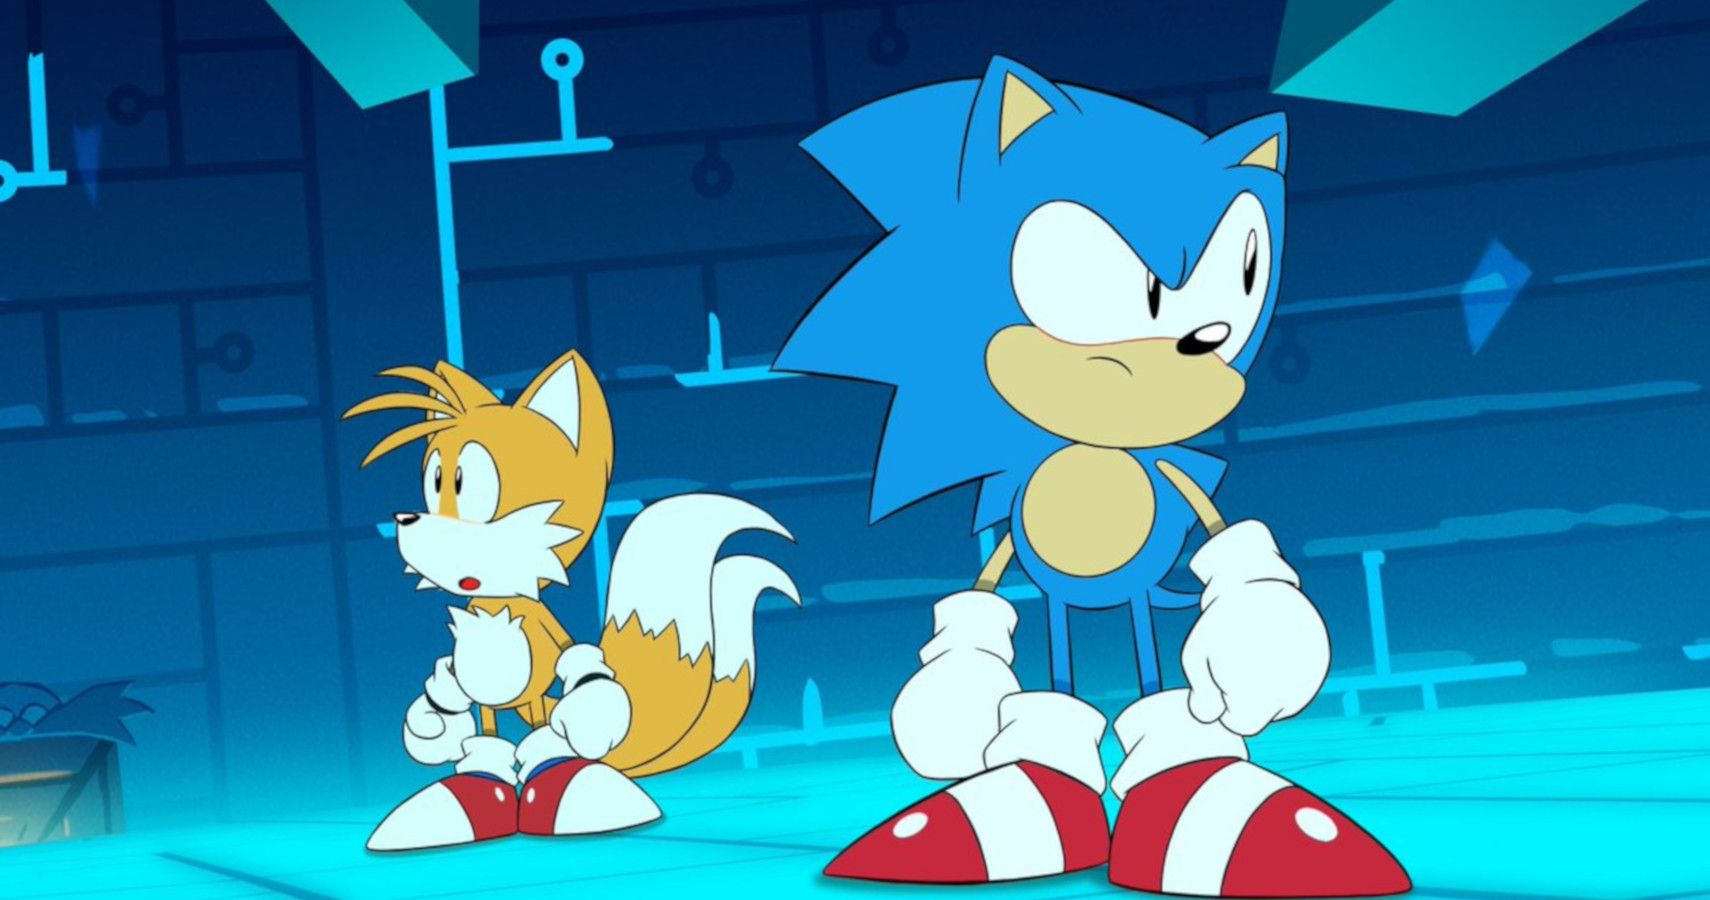 10 Craziest Facts About Sonic The Hedgehog Thegamer